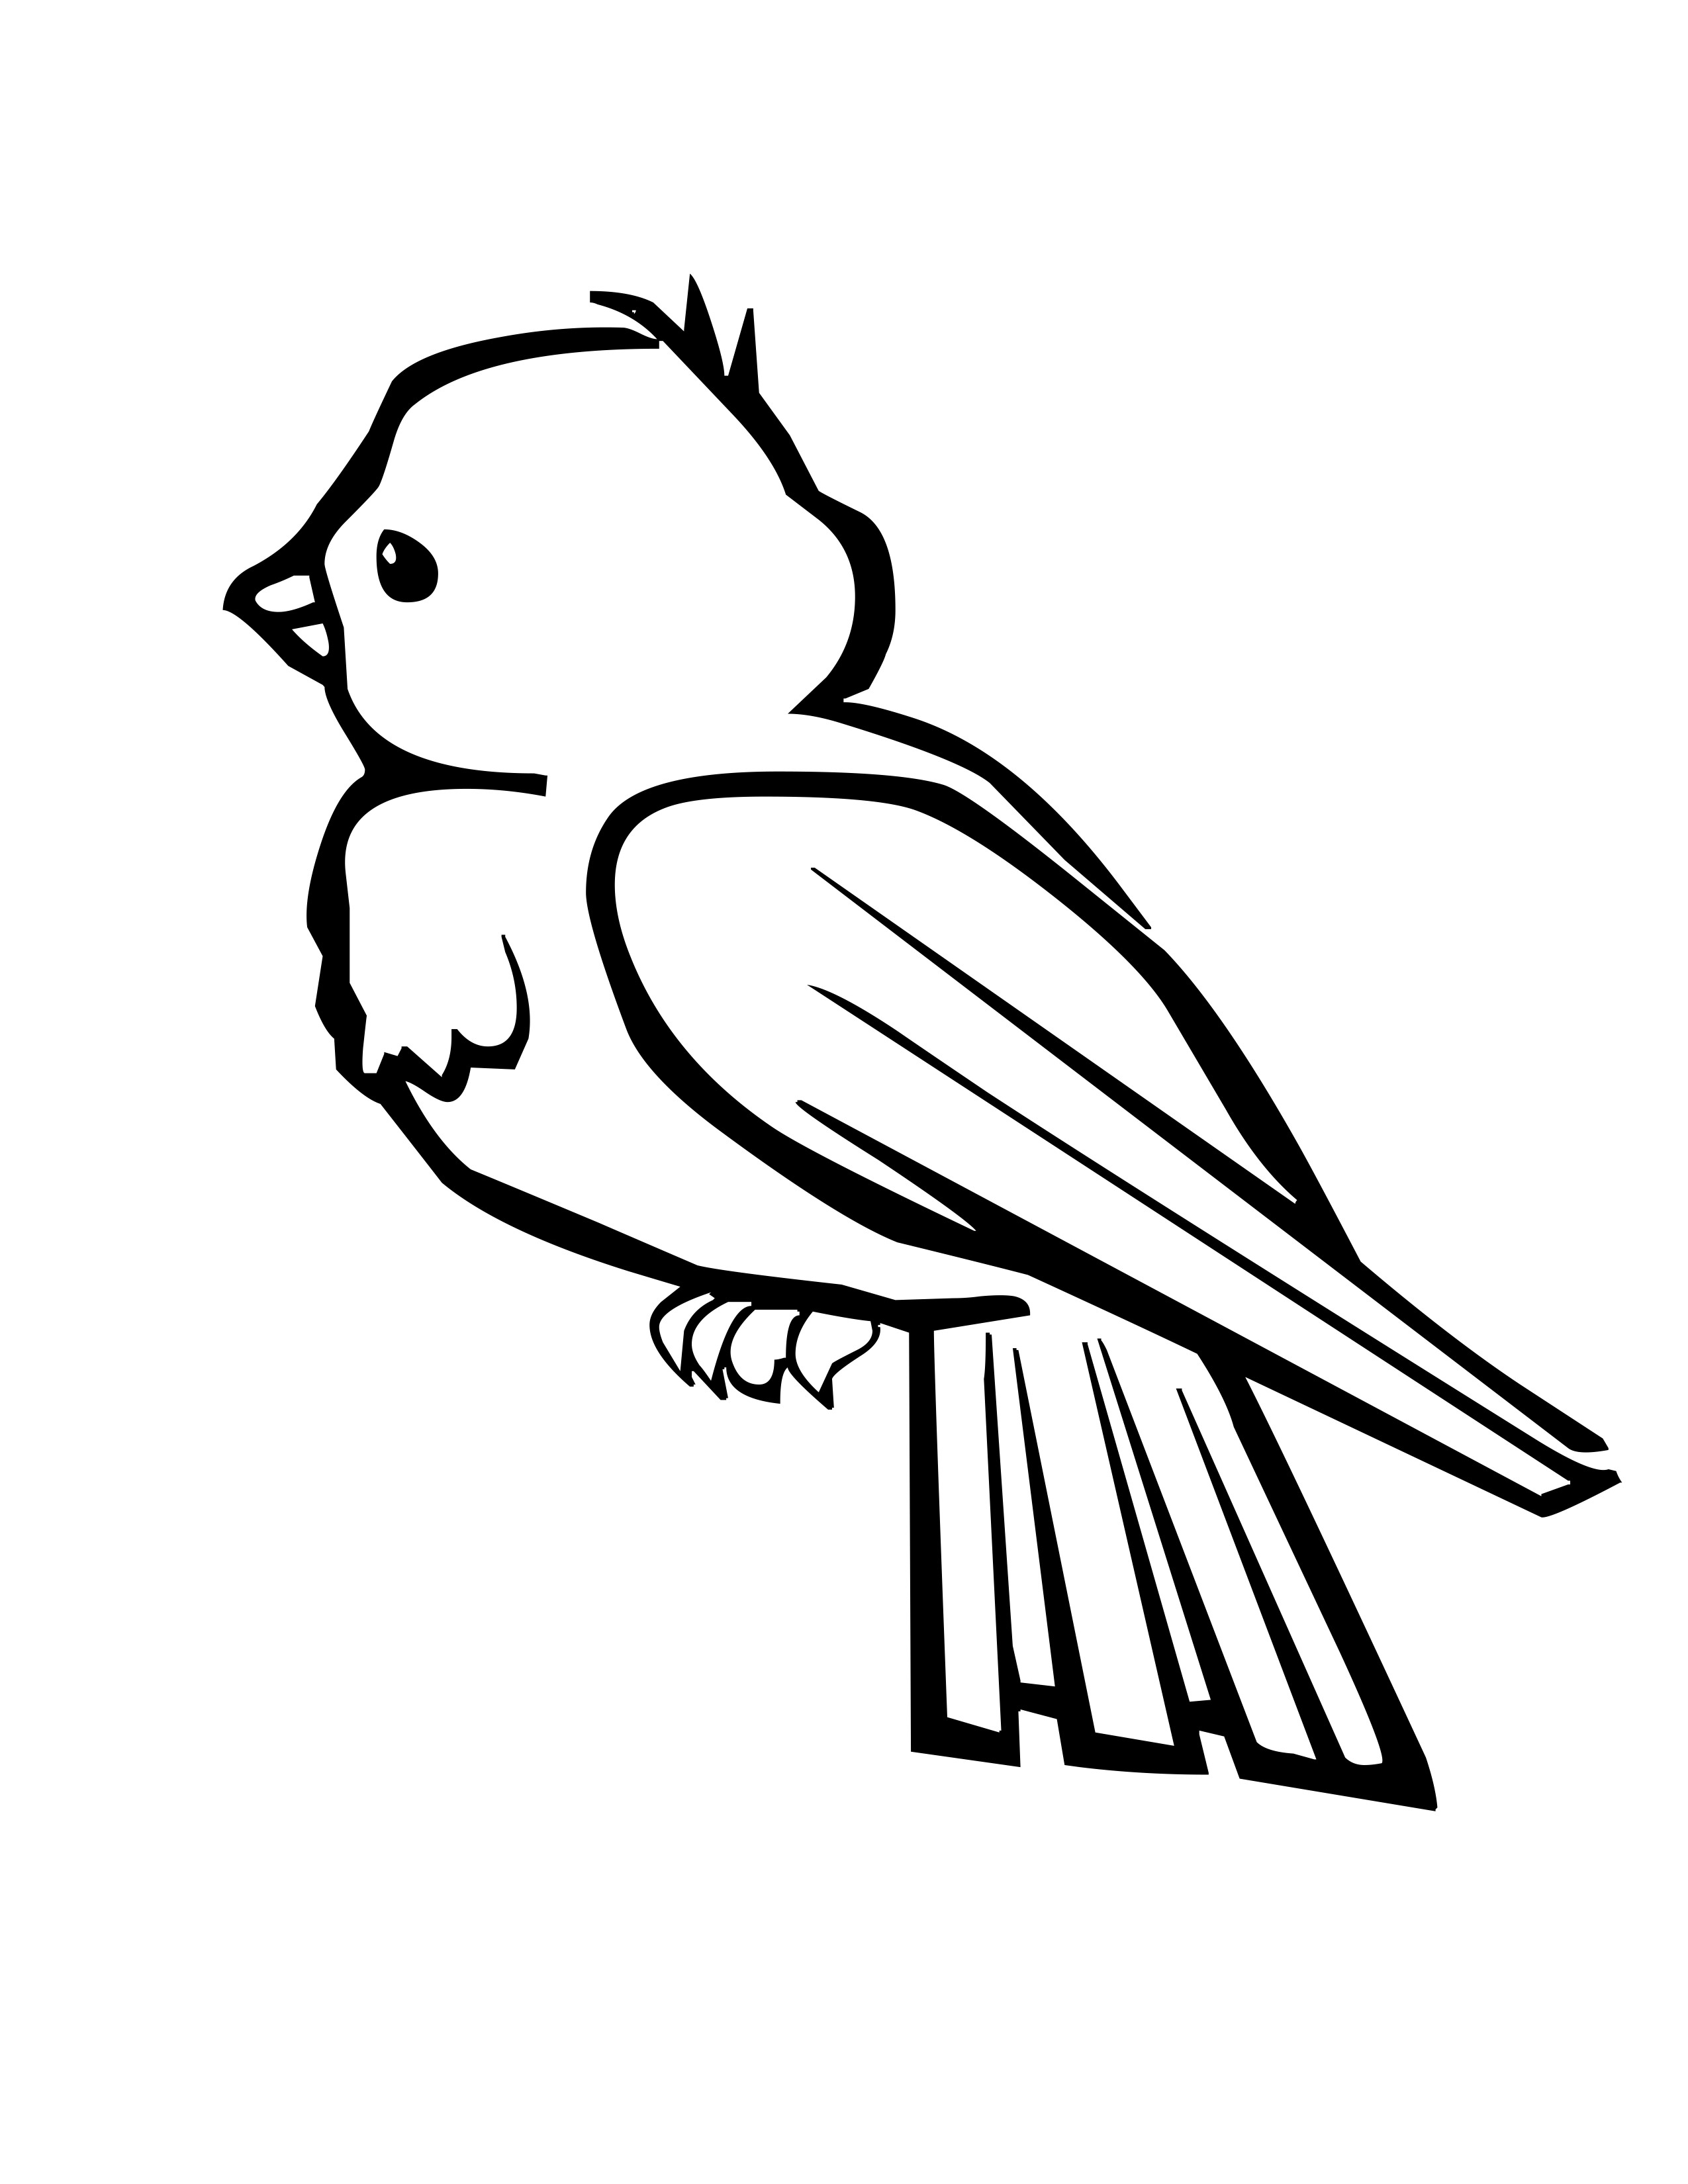 bird printable coloring pages his heart of compassion little winter birds coloring bird printable pages